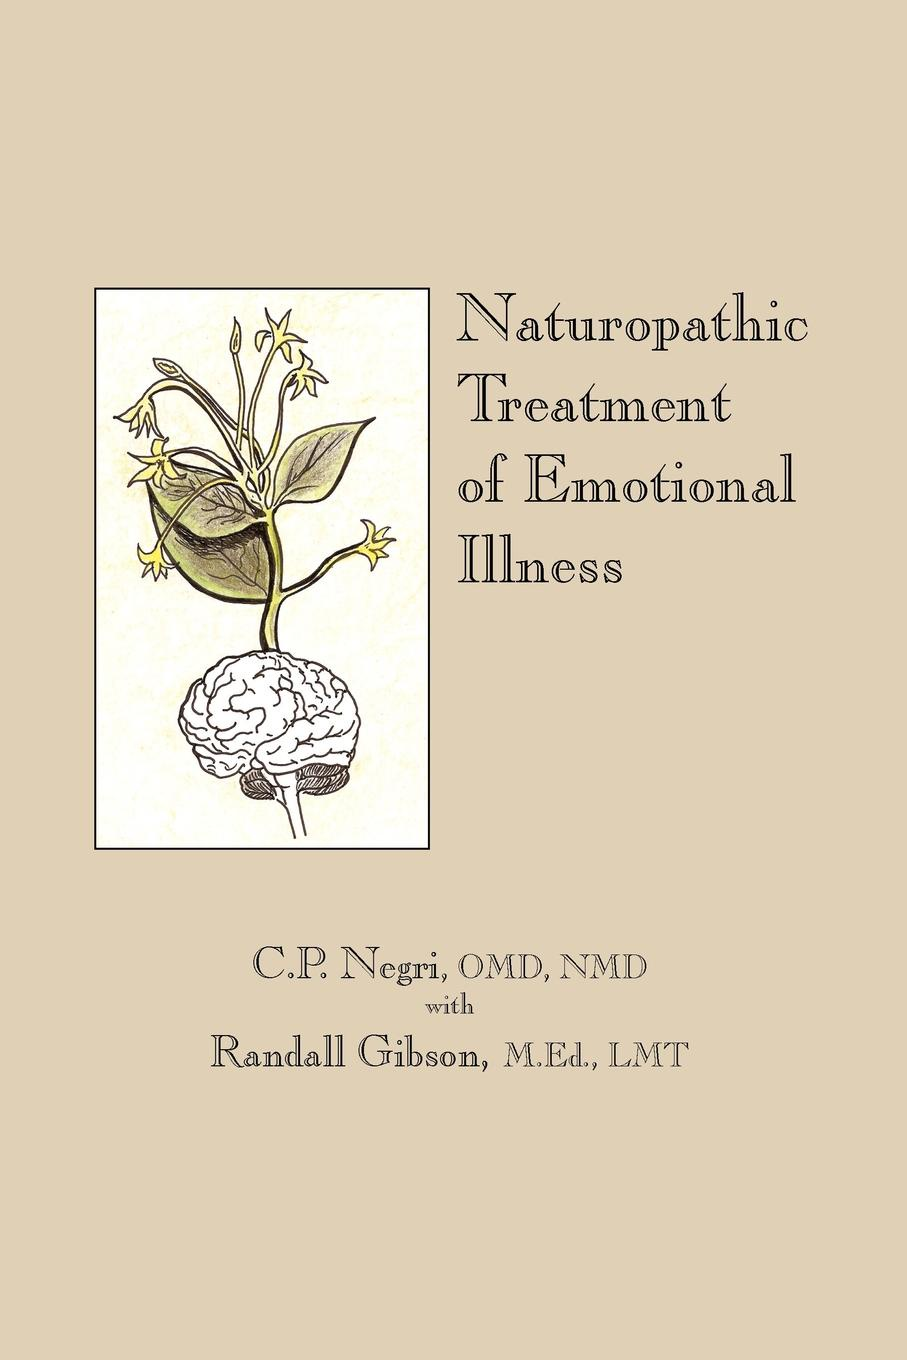 C. P. Negri OMD NMD, Randall Gibson M.Ed. LMT Naturopathic Treatment of Emotional Illness c e randall page of roses